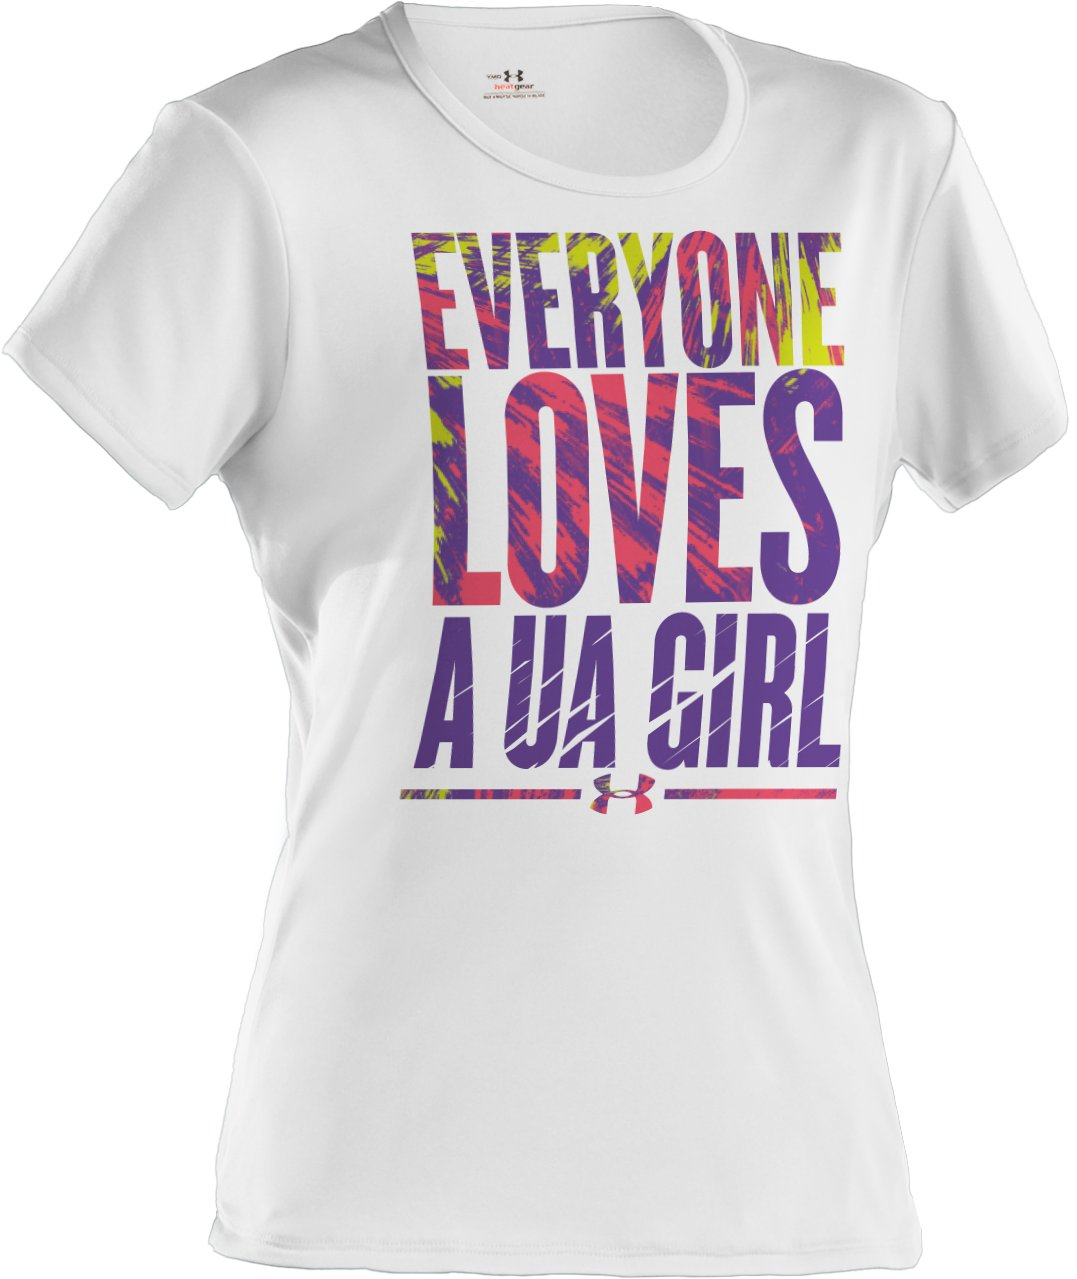 Girls' UA Everyone Loves T-Shirt, White